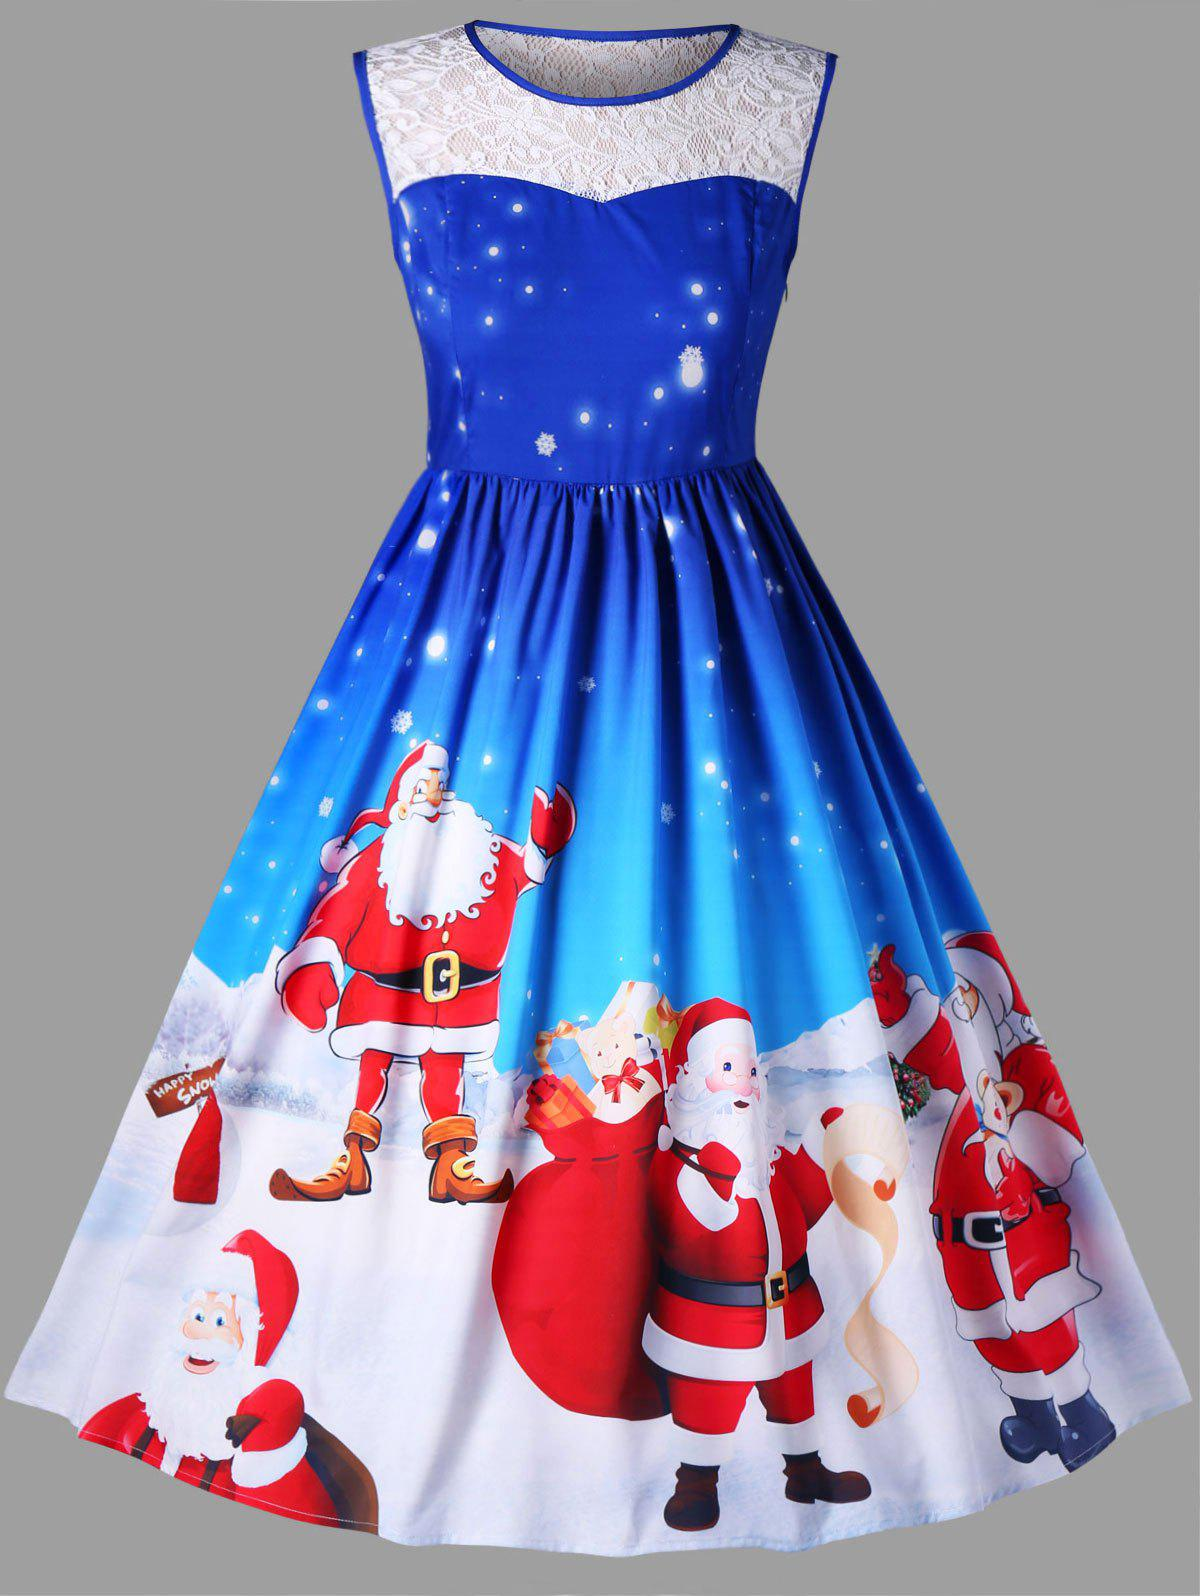 Christmas Plus Size Santa Claus Sleeveless Swing DressWOMEN<br><br>Size: 4XL; Color: BLUE; Style: Vintage; Material: Polyester; Silhouette: A-Line; Dresses Length: Knee-Length; Neckline: Round Collar; Sleeve Length: Sleeveless; Embellishment: Lace; Pattern Type: Animal,Character; With Belt: No; Season: Fall,Spring; Weight: 0.4200kg; Package Contents: 1 x Dress;